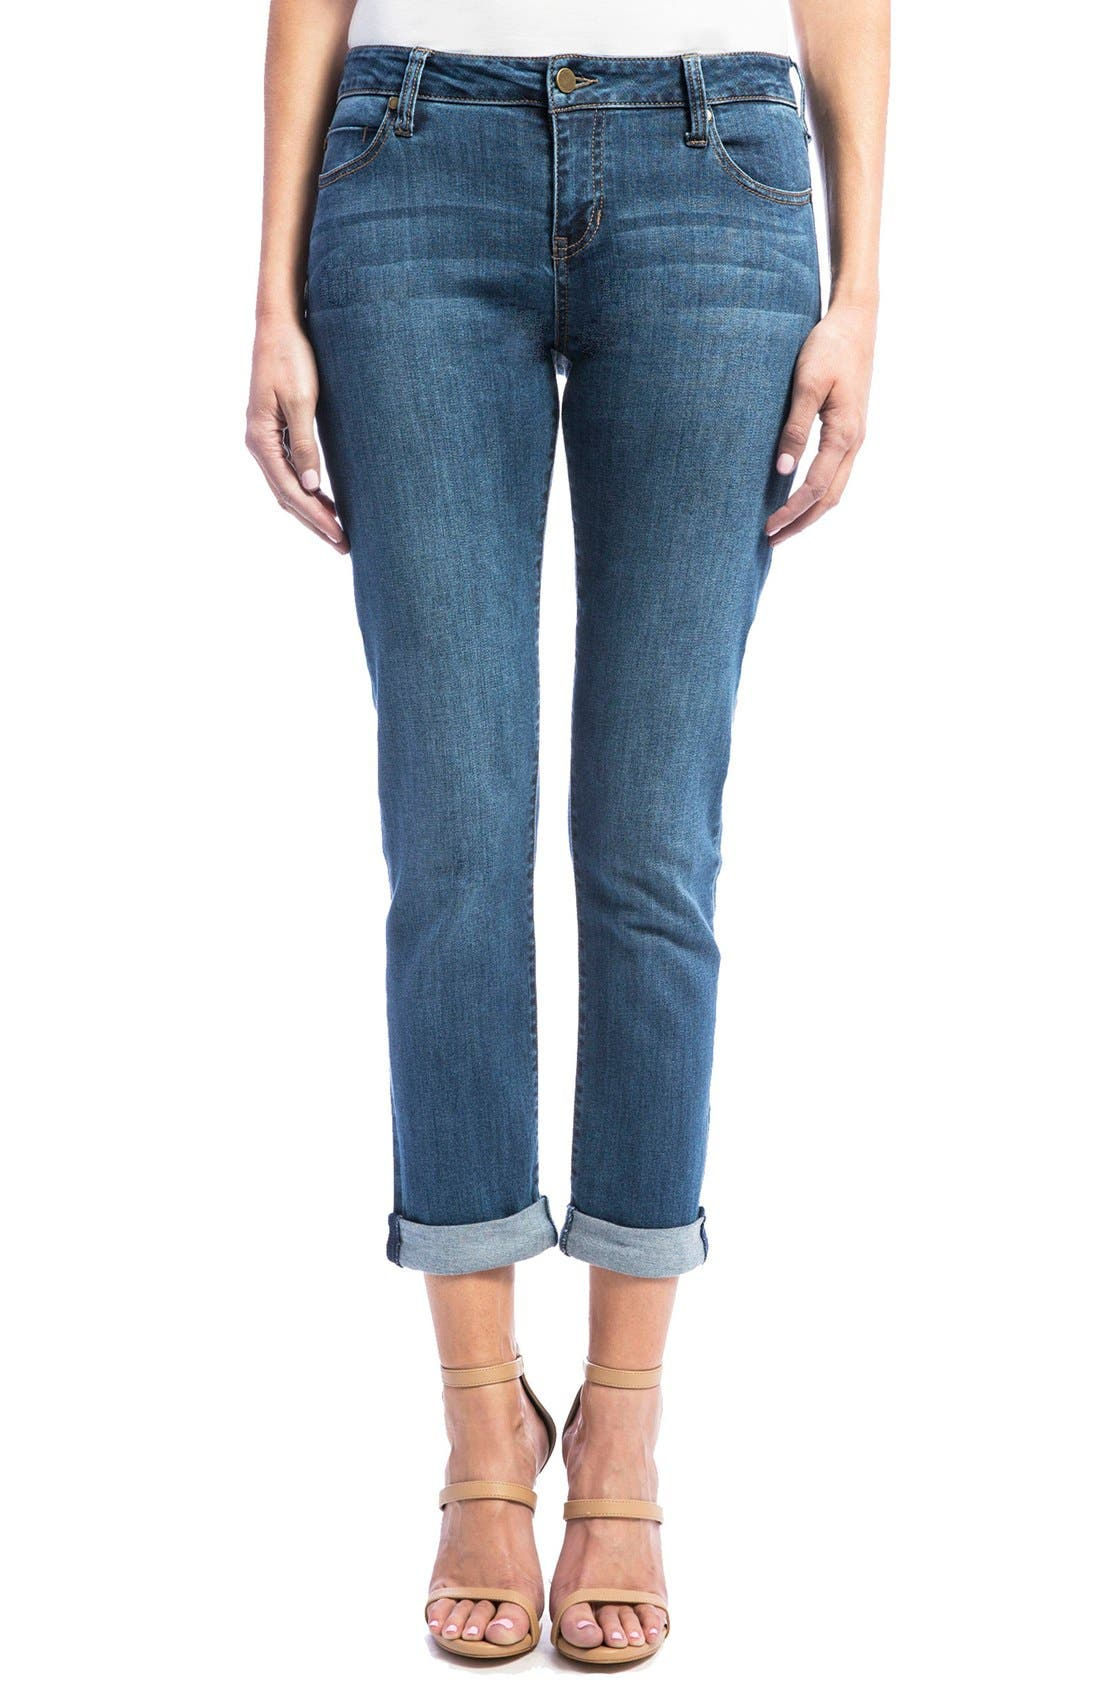 LIVERPOOL JEANS COMPANY Peyton Slim Stretch Crop Boyfriend